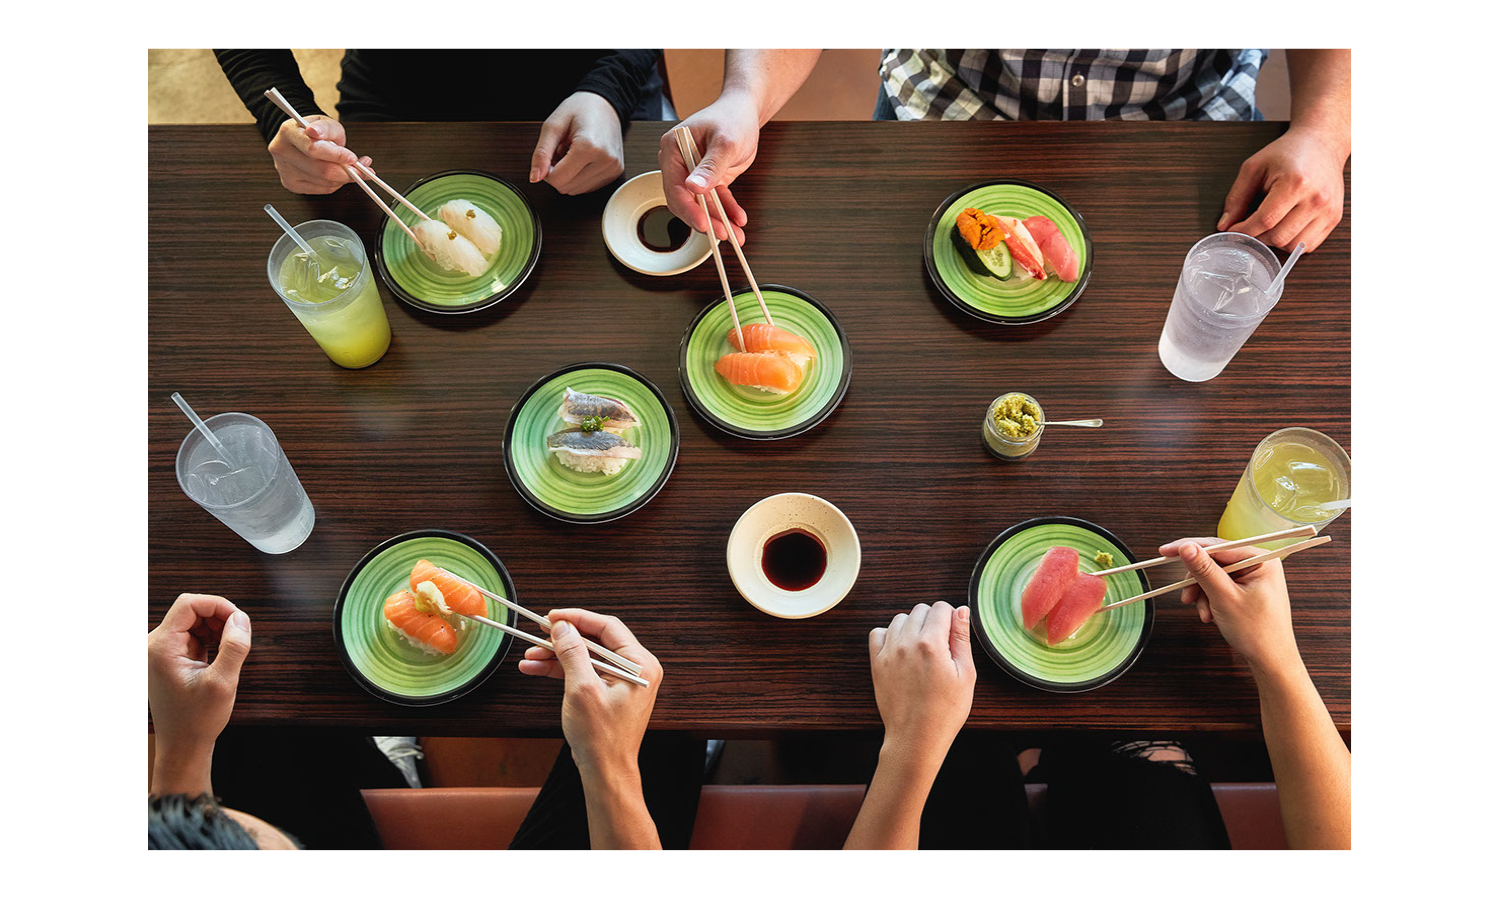 Hands holding chopsticks reach across a conveyor belt to pluck pieces of sushi from plates moving slowly past